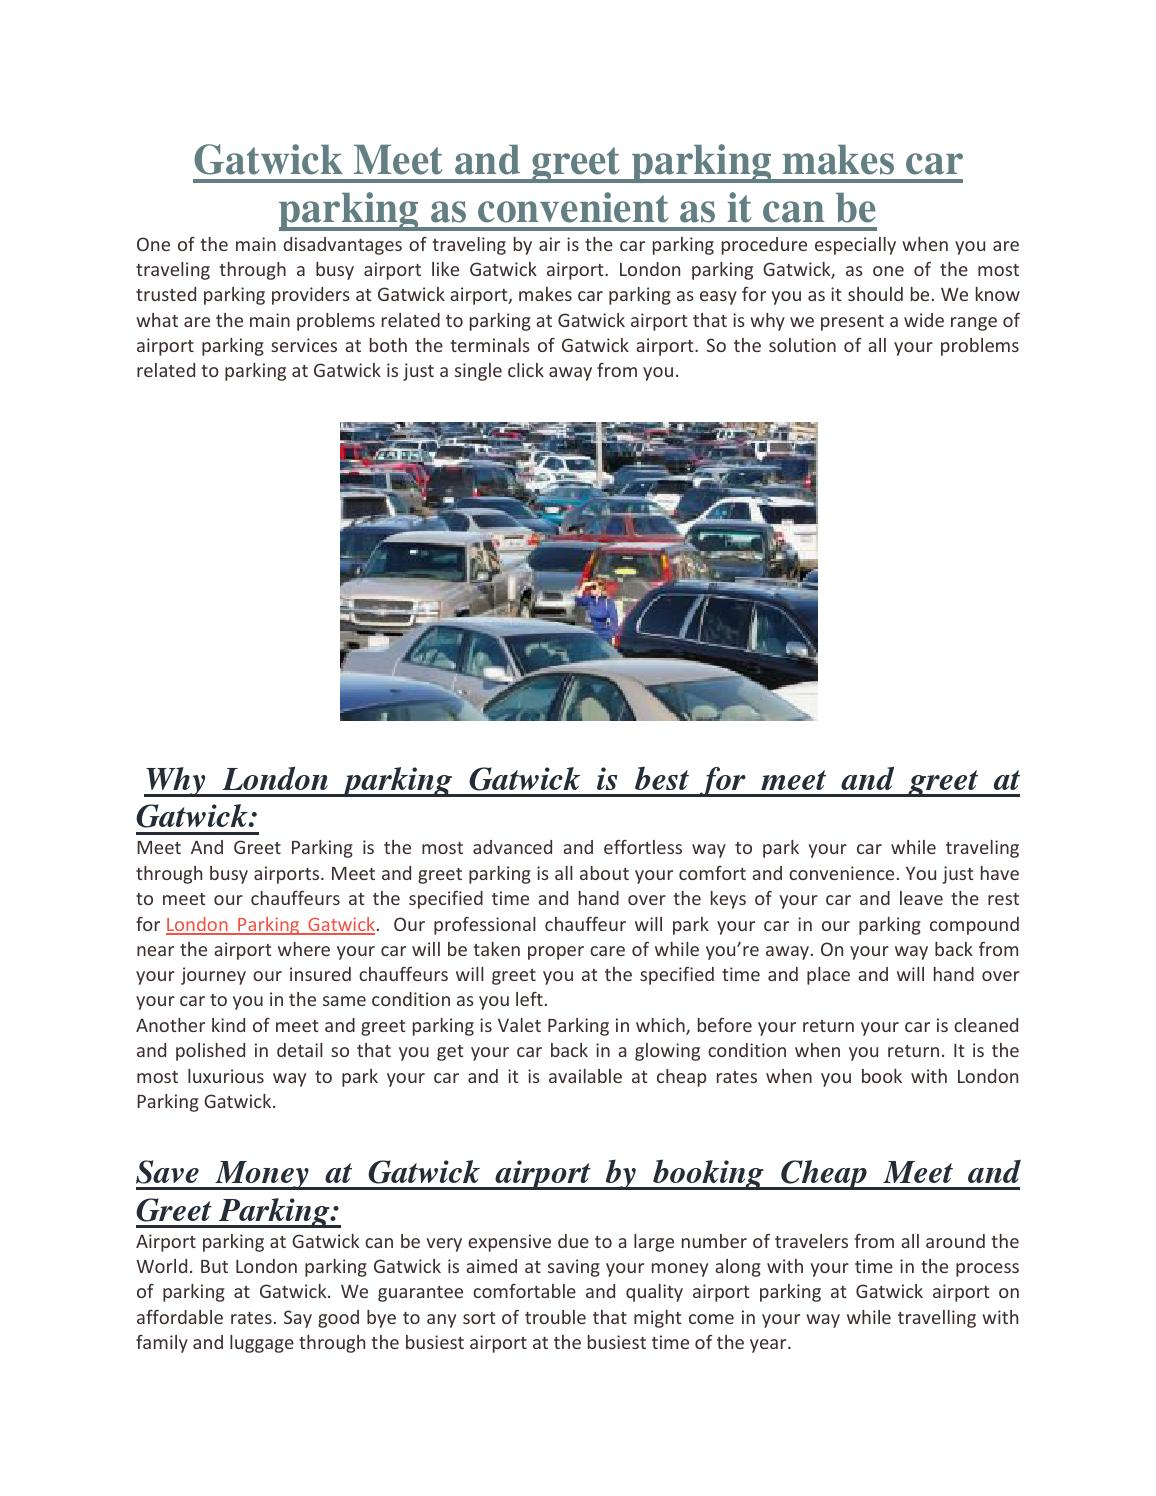 Gatwick Meet And Greet Parking Makes Car Parking As Convenient As It